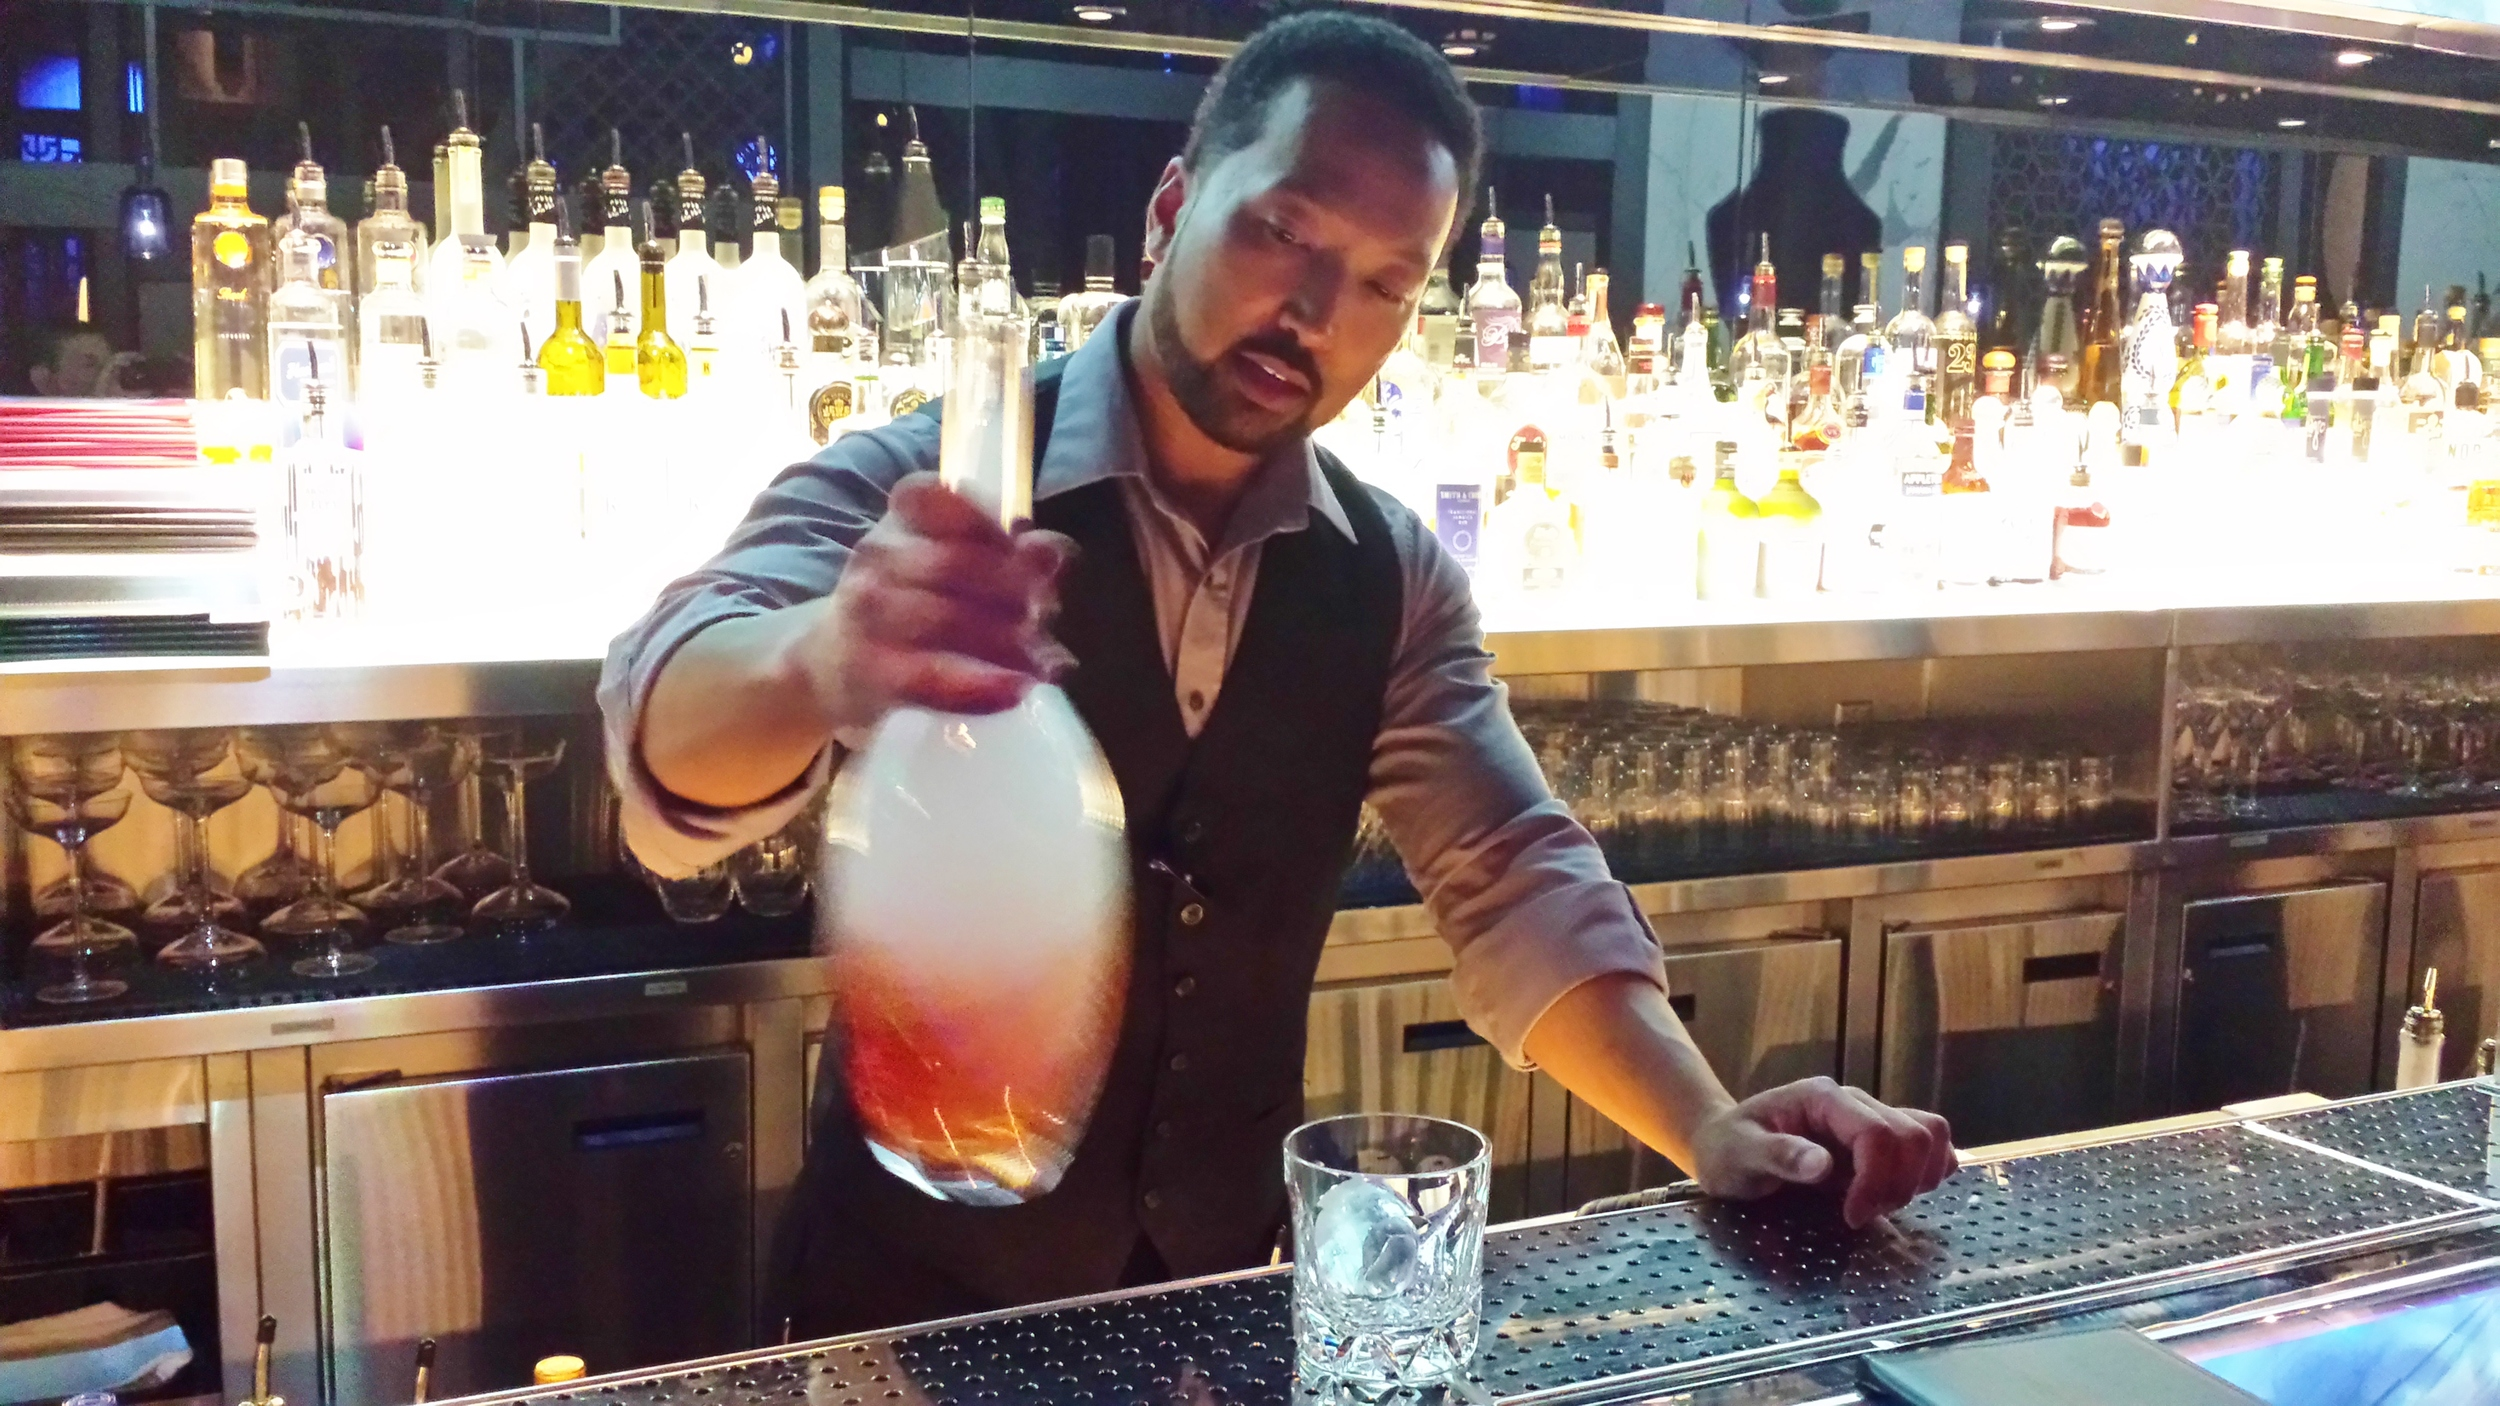 Adrian mixing up a Smoky Negroni